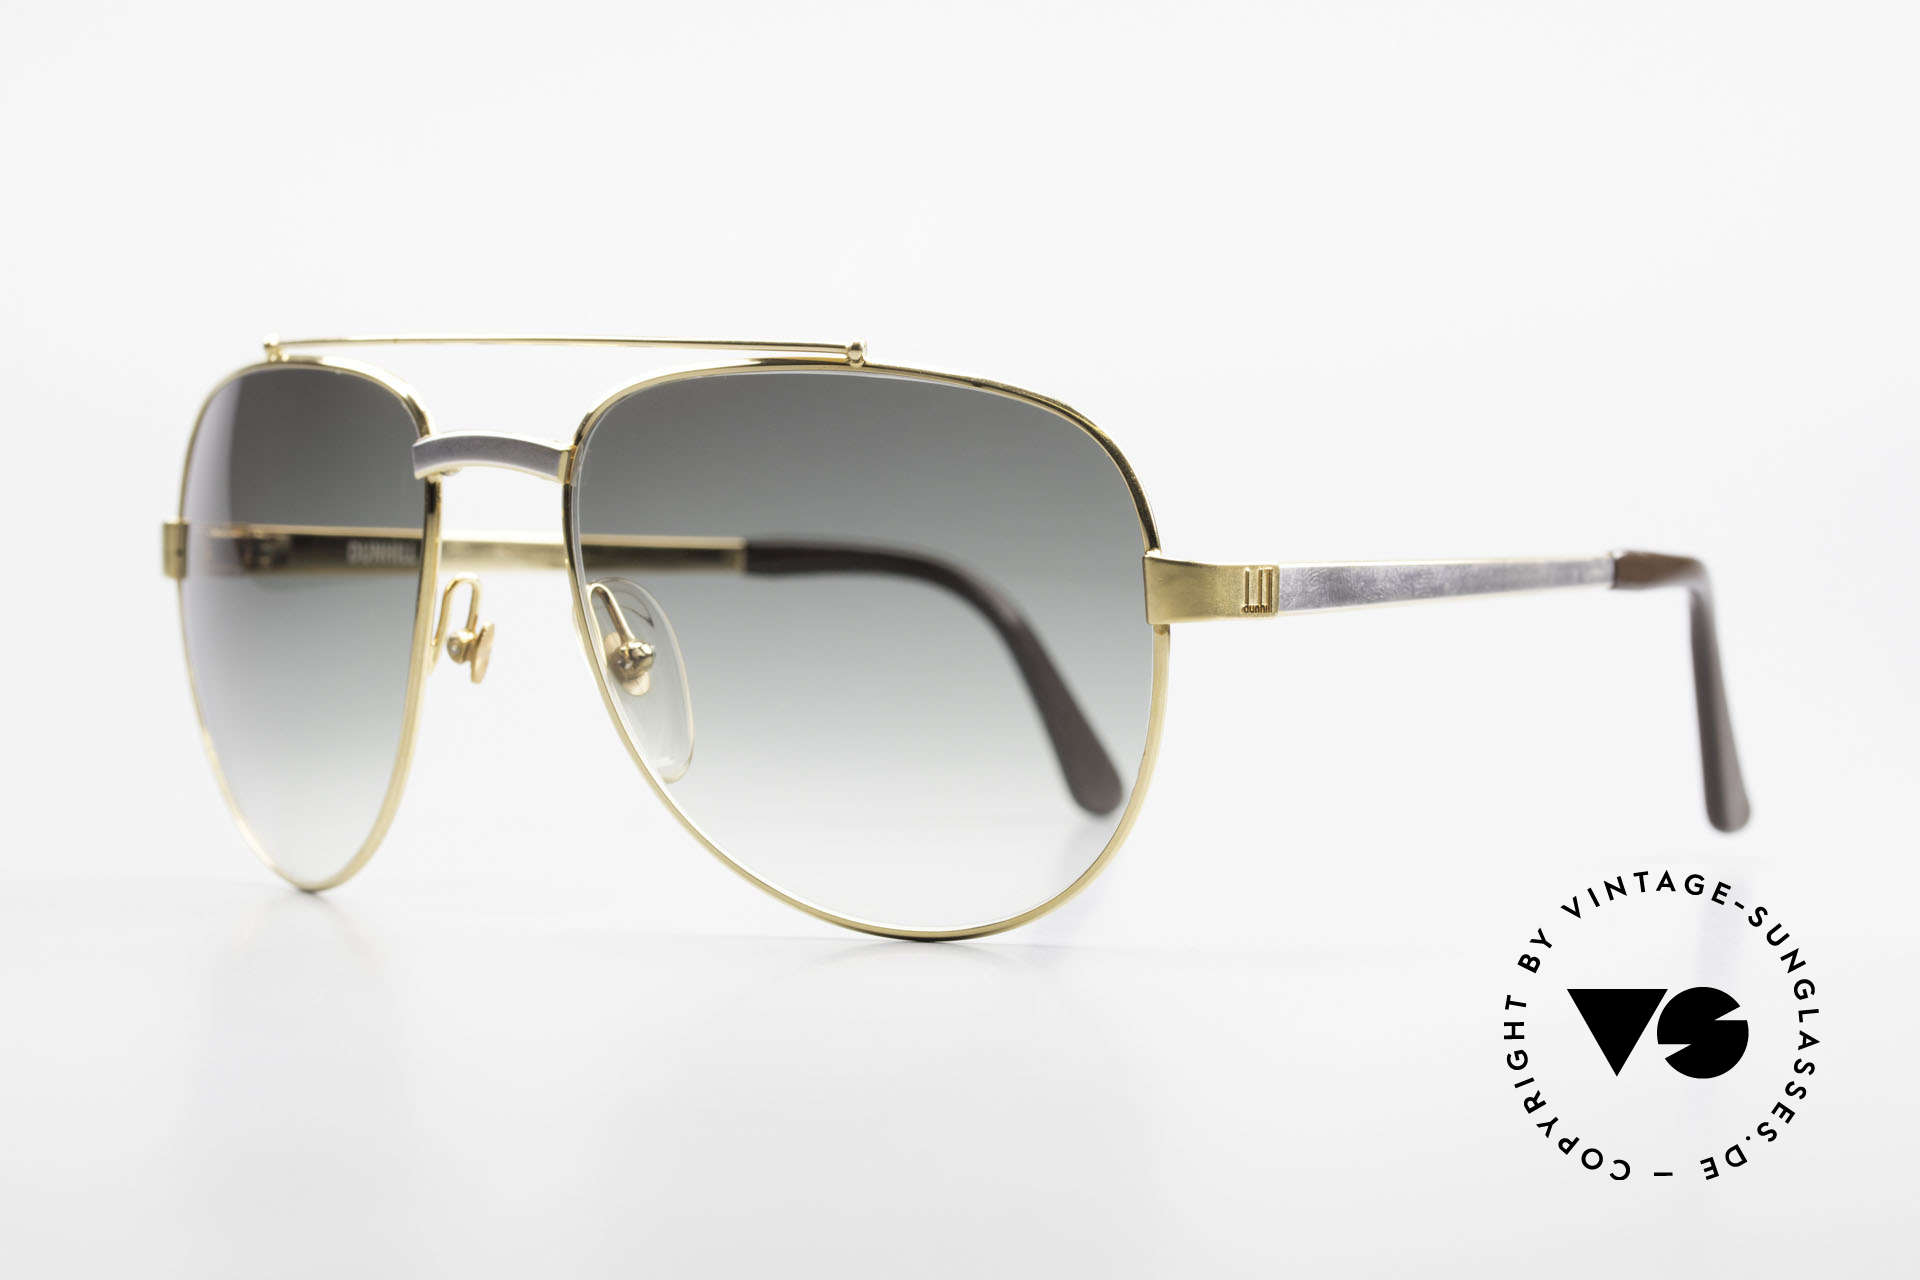 Dunhill 6029 Gold Plated Luxury Sunglasses, gold-plated & rhodanized frame = luxury shades, Made for Men